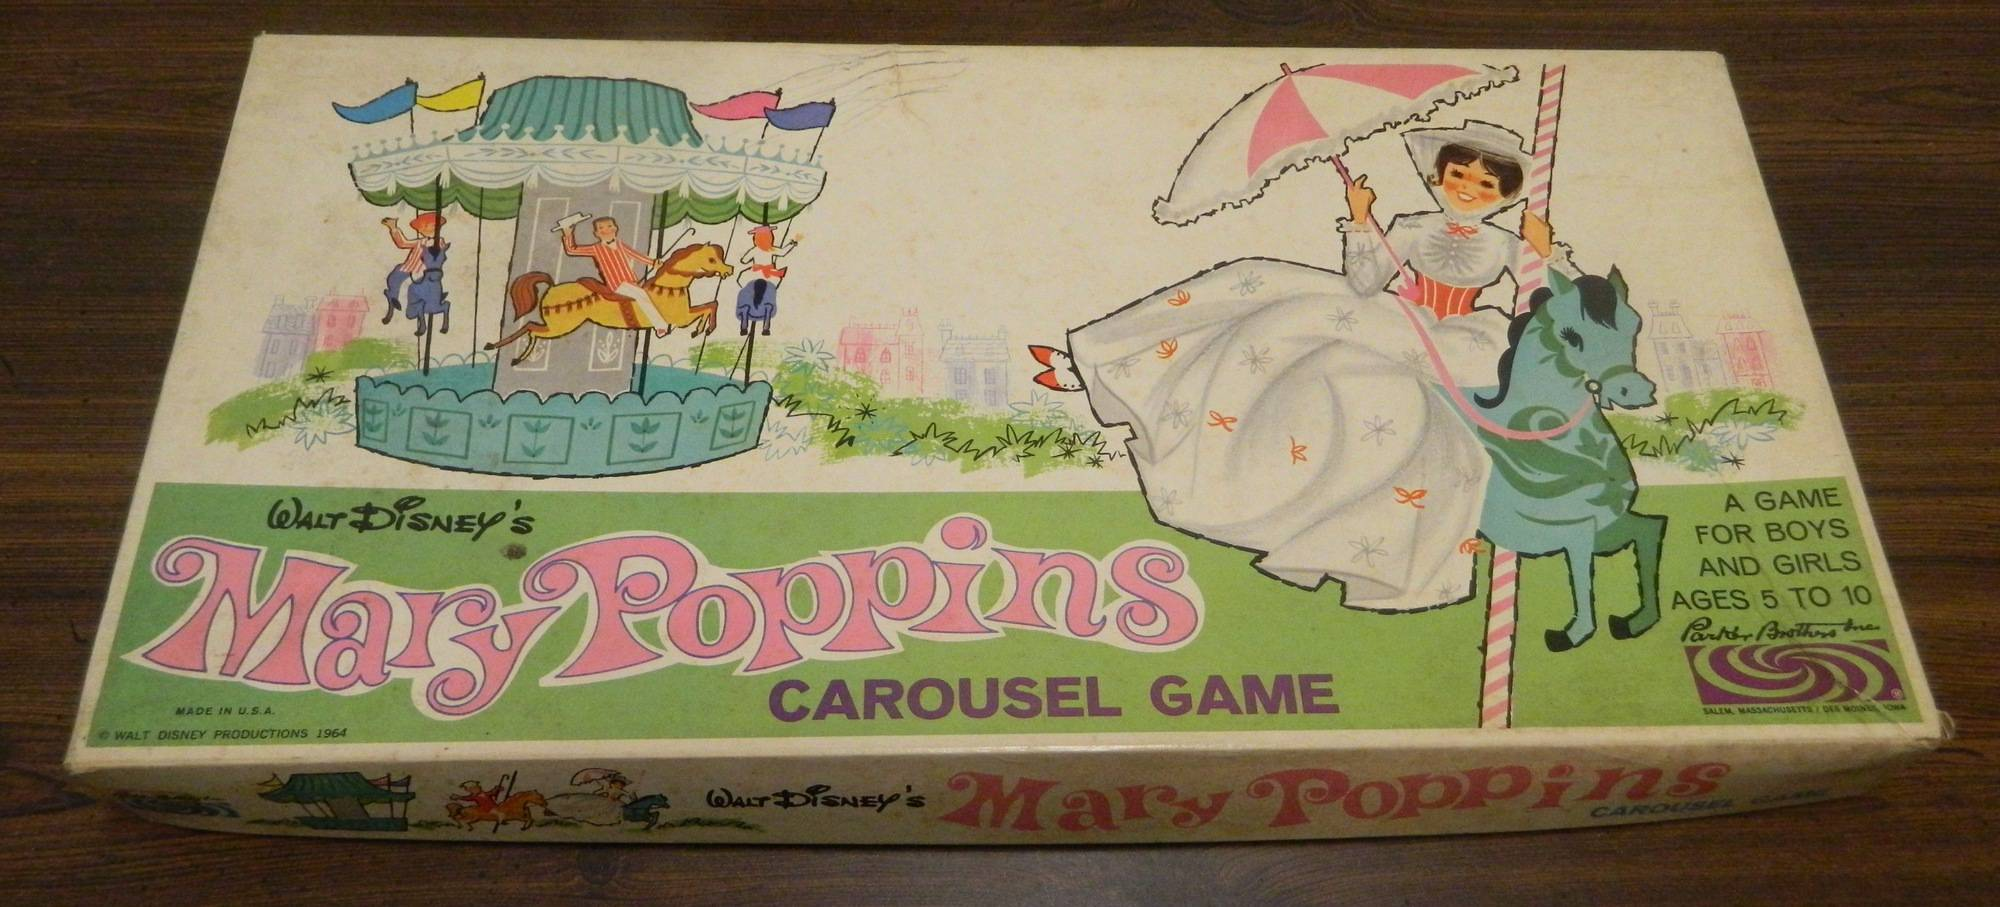 Box for Mary Poppins Carousel Game